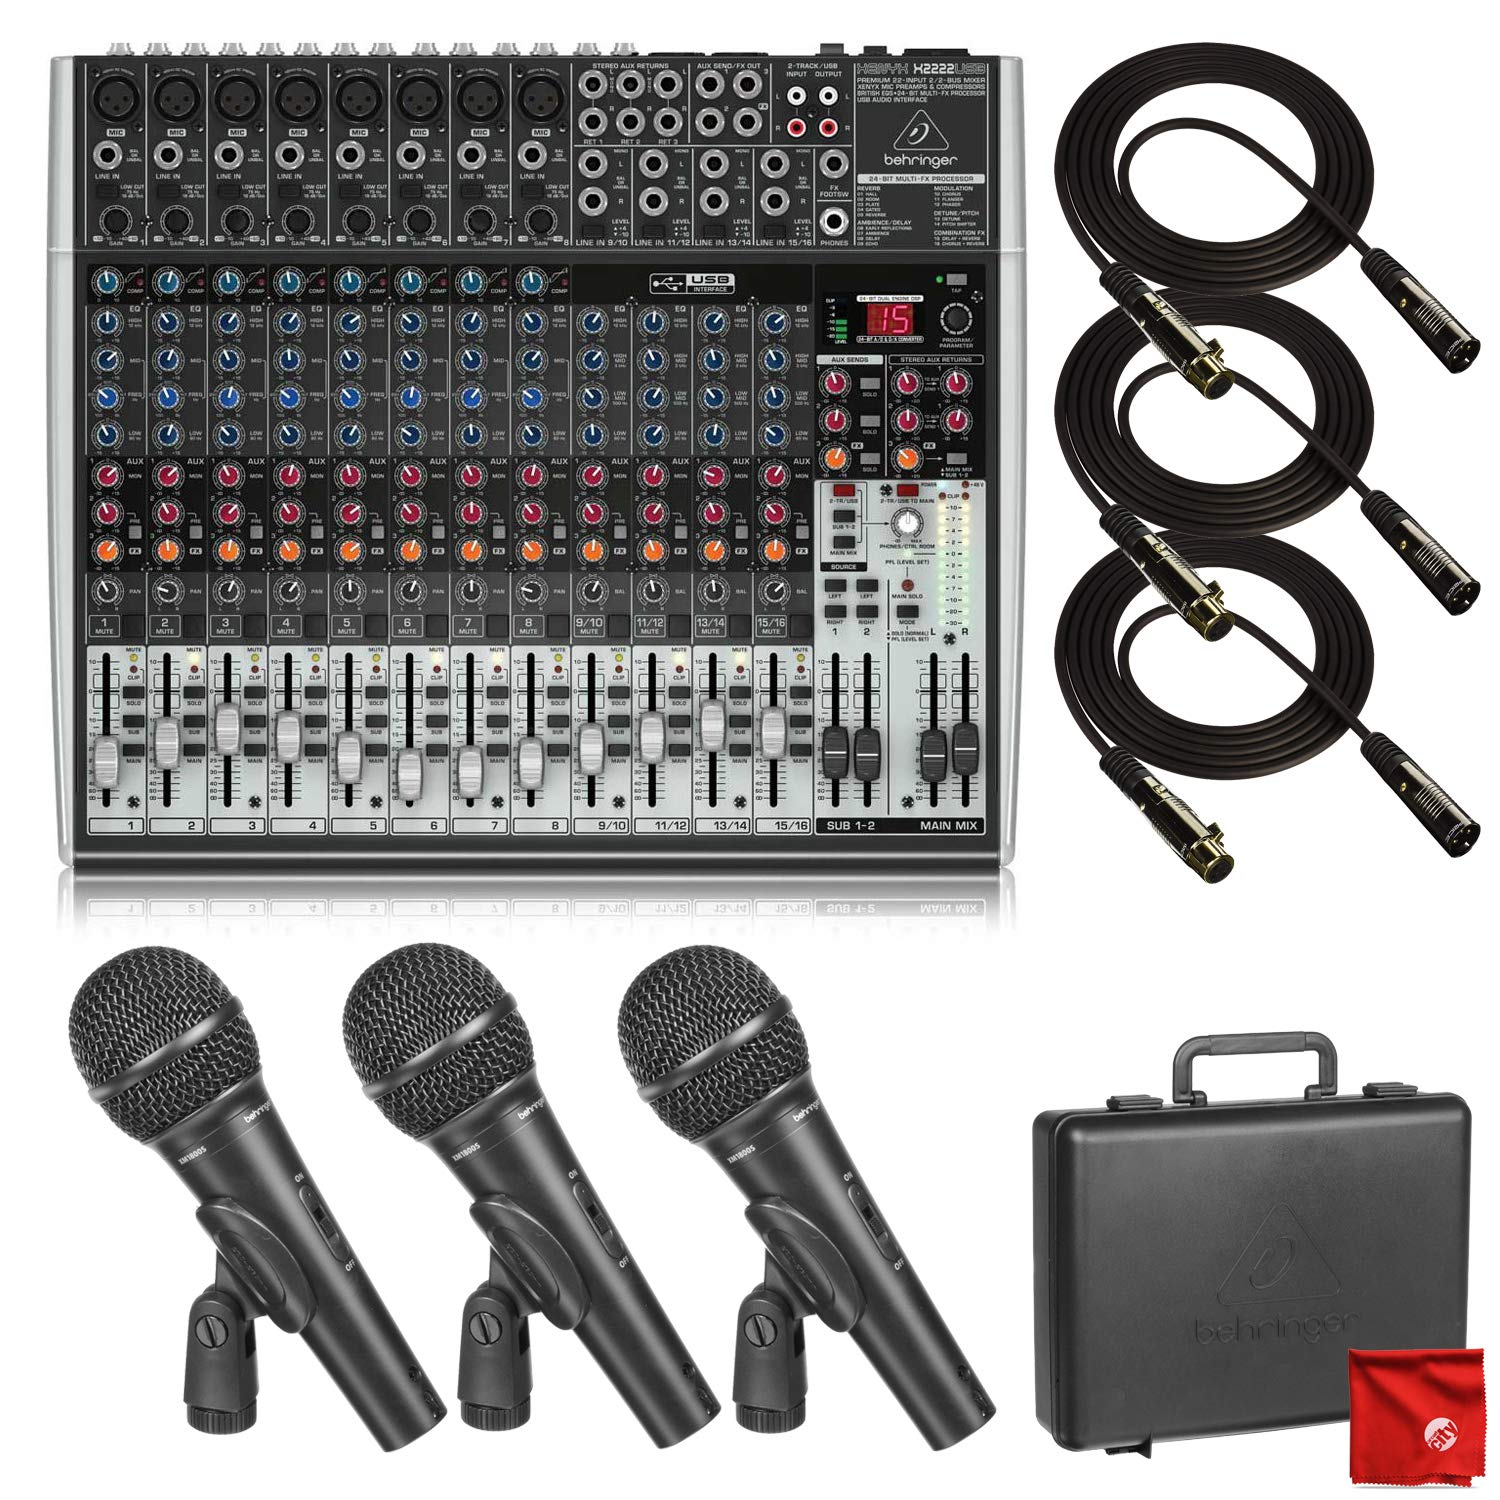 Behringer Xenyx X2222USB USB and Built-in Effects Mixer with 3 Behringer XM1800S Dynamic Microphones and 3X Gold Plated Monoprice Premium XLR Cables